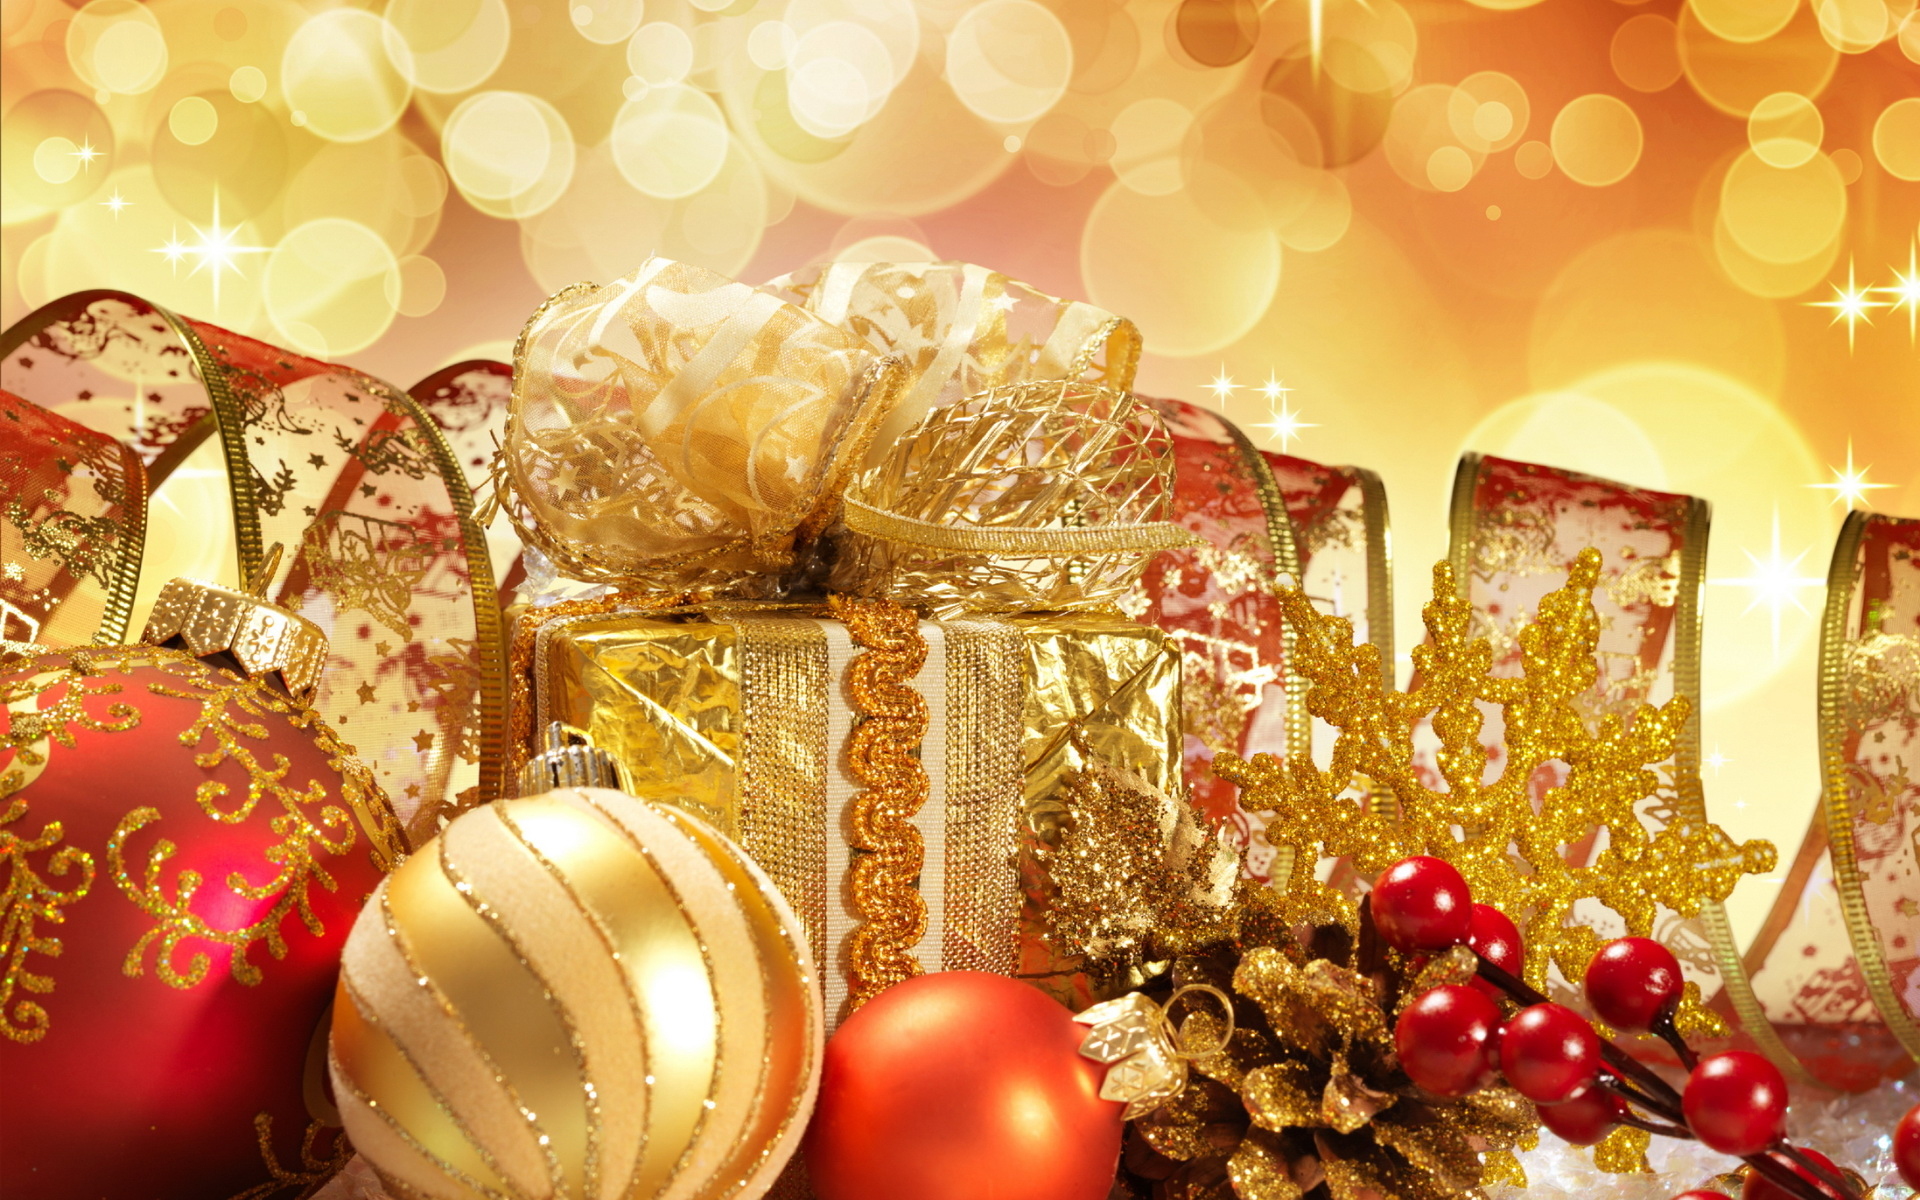 Christmas decorations wallpapers and images   wallpapers 1920x1200